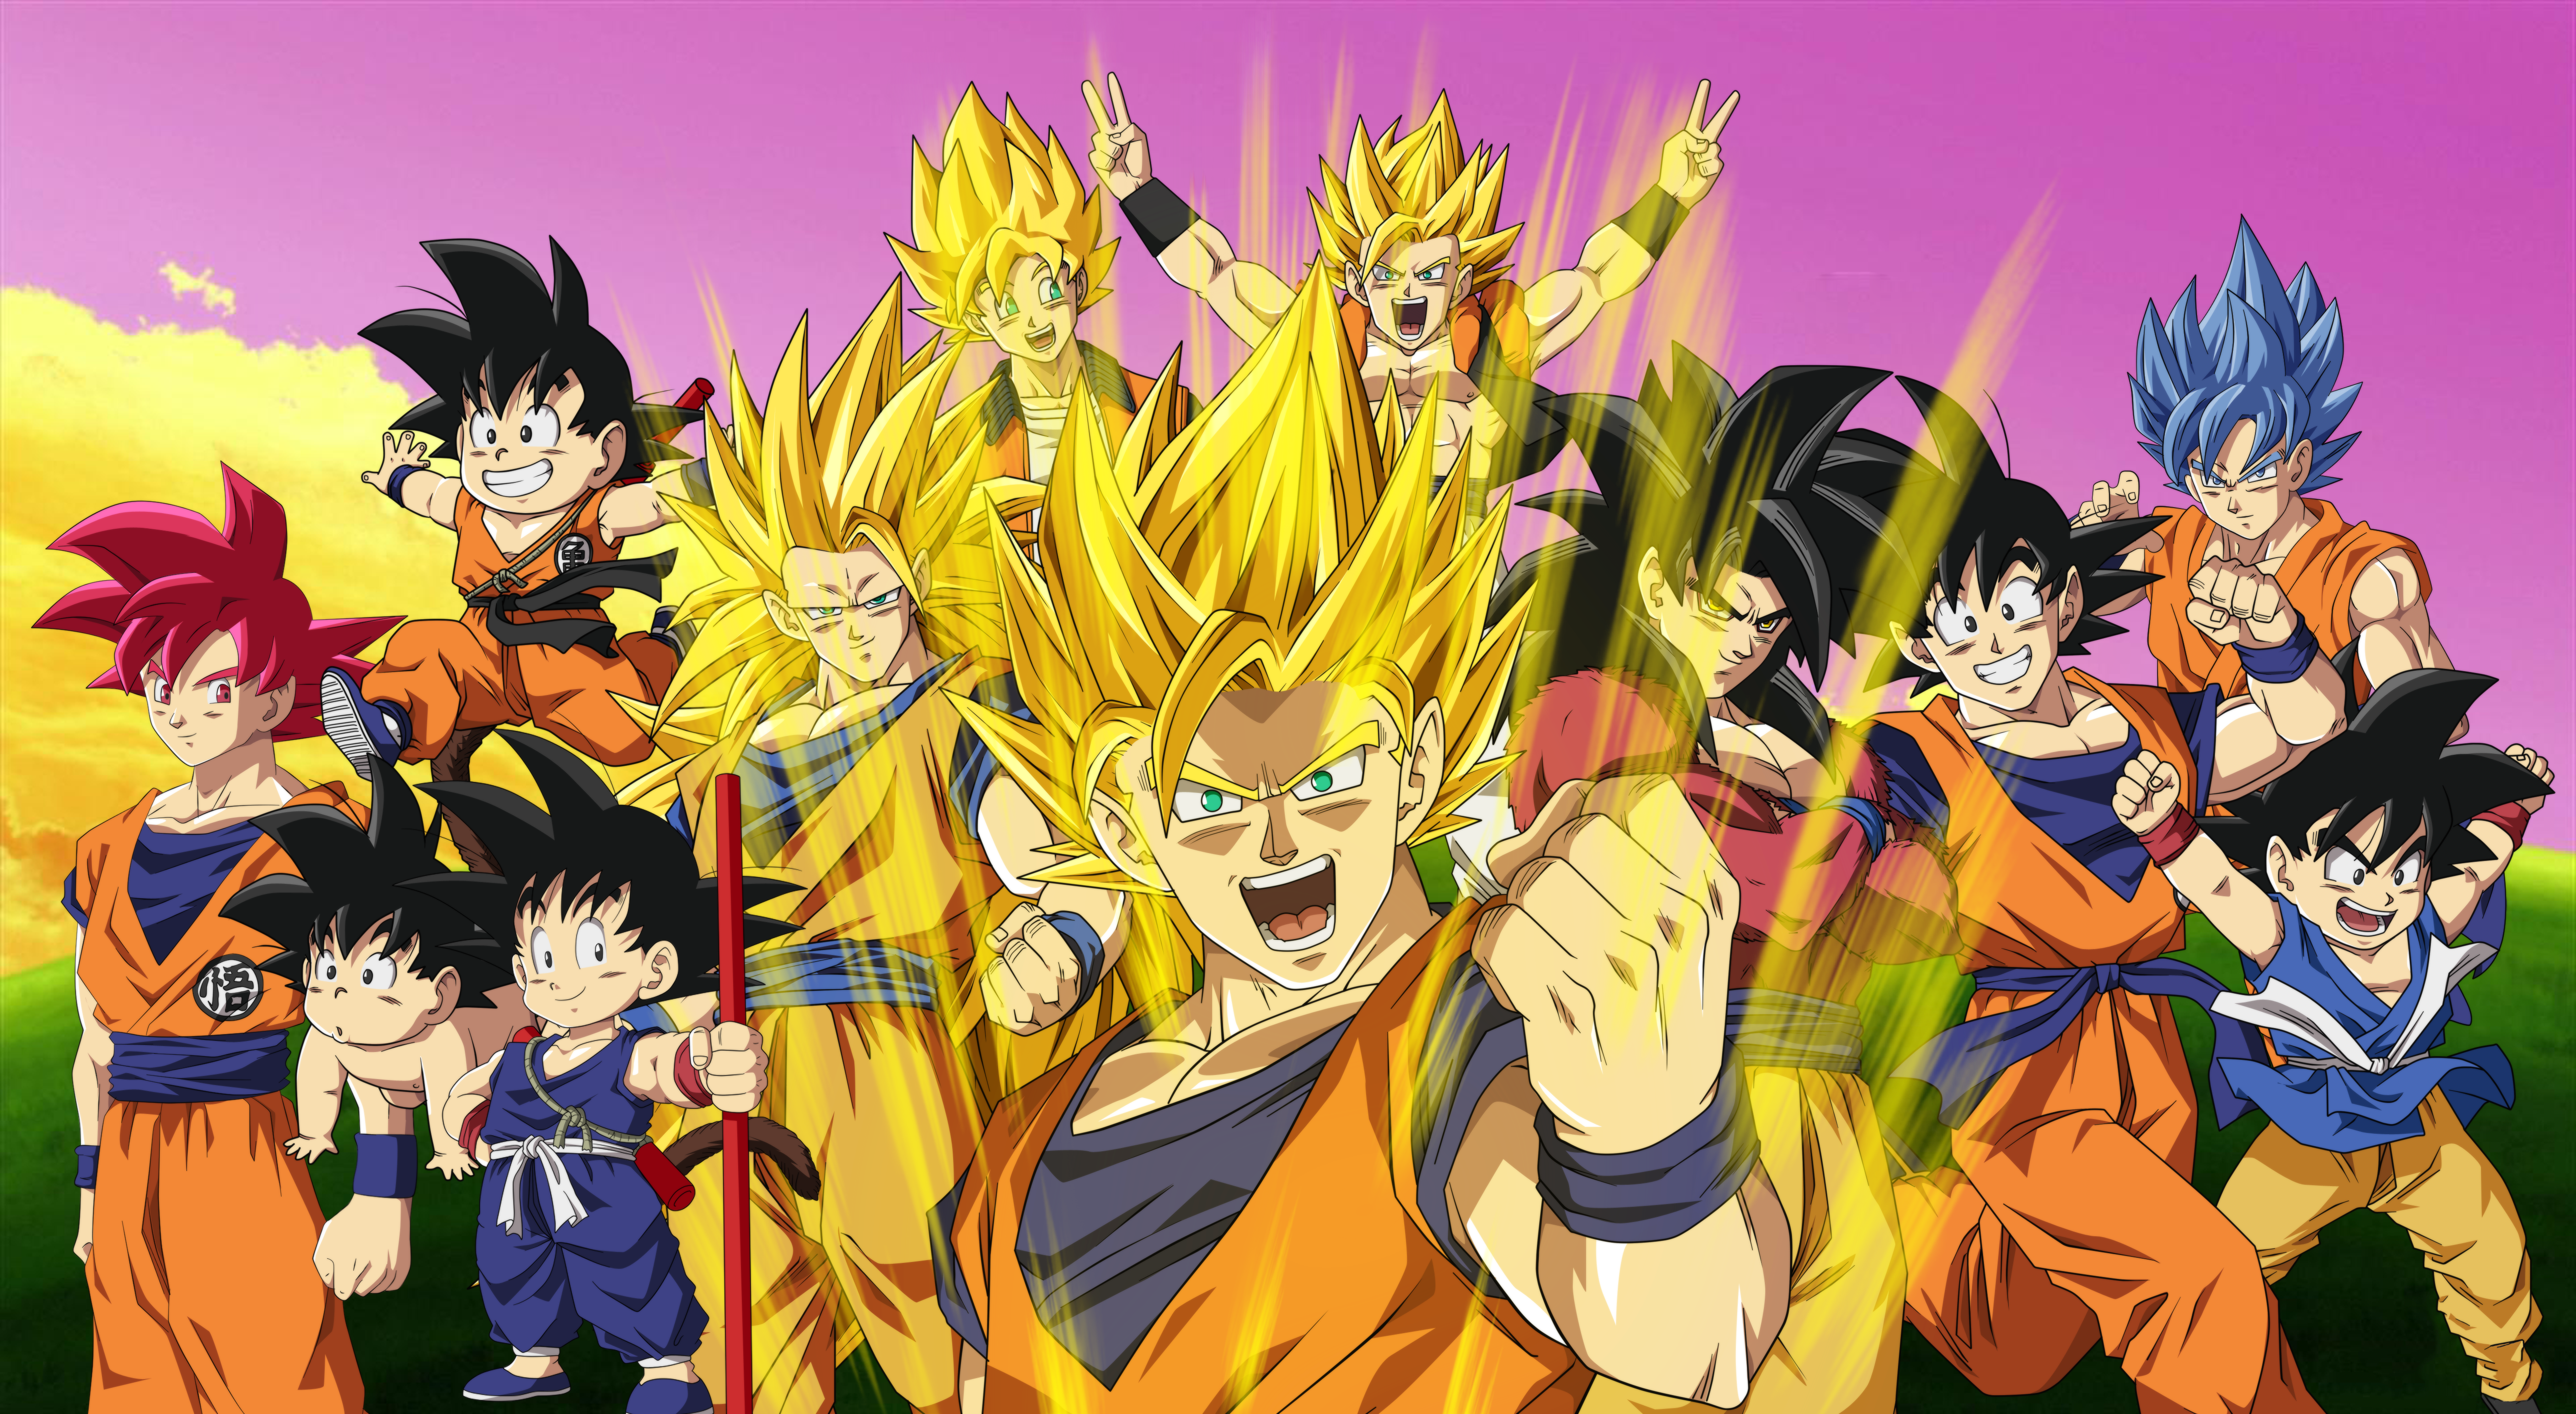 139 4k ultra hd dragon ball z wallpapers background images wallpaper abyss - Dragon Ball Z Com